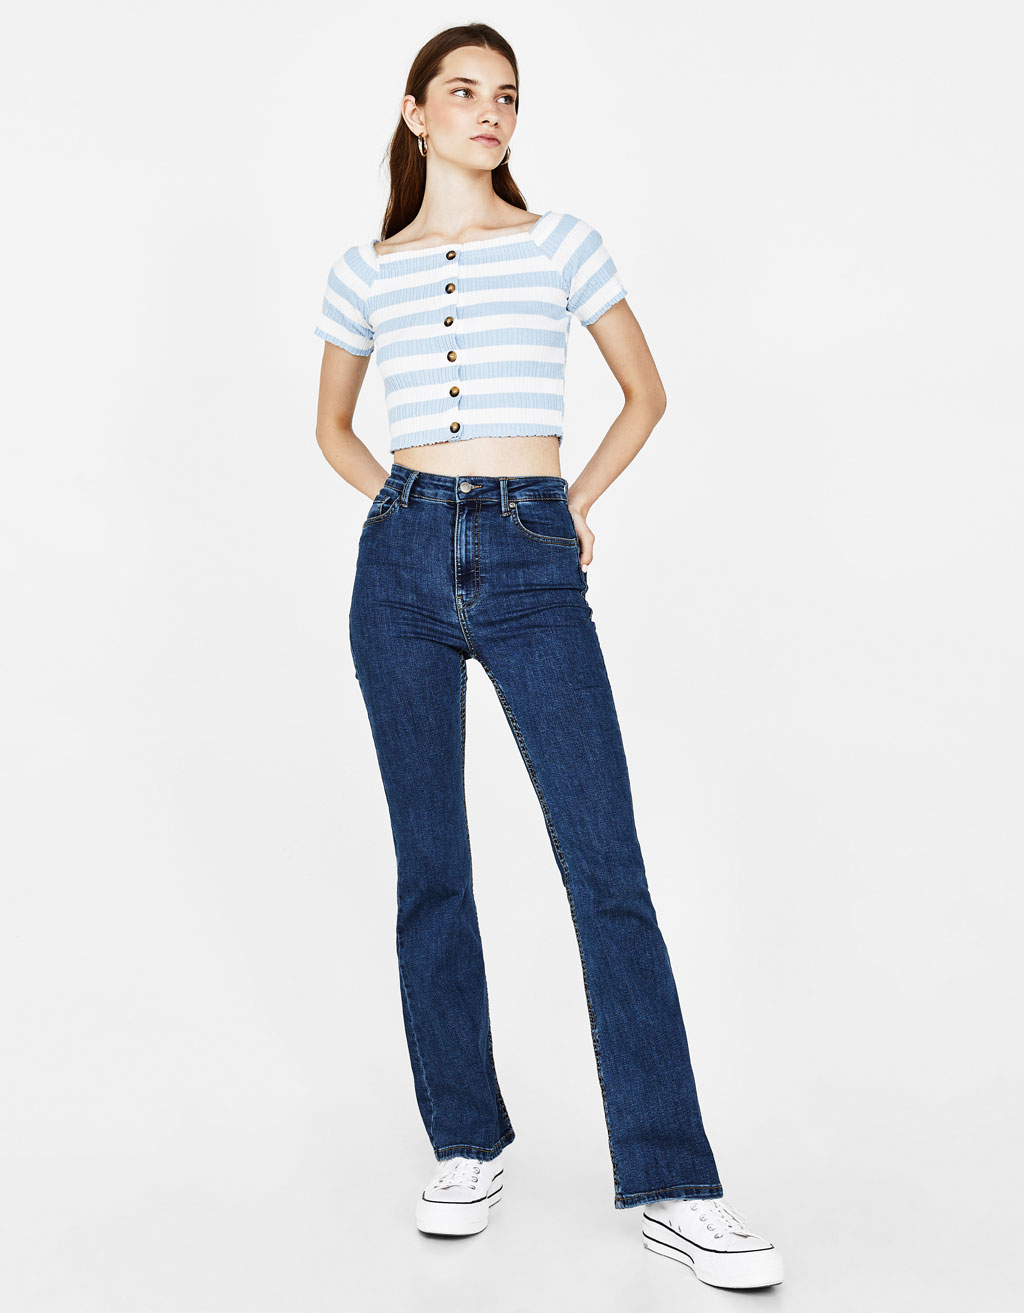 Ribbed T-shirt with bardot neckline and buttons